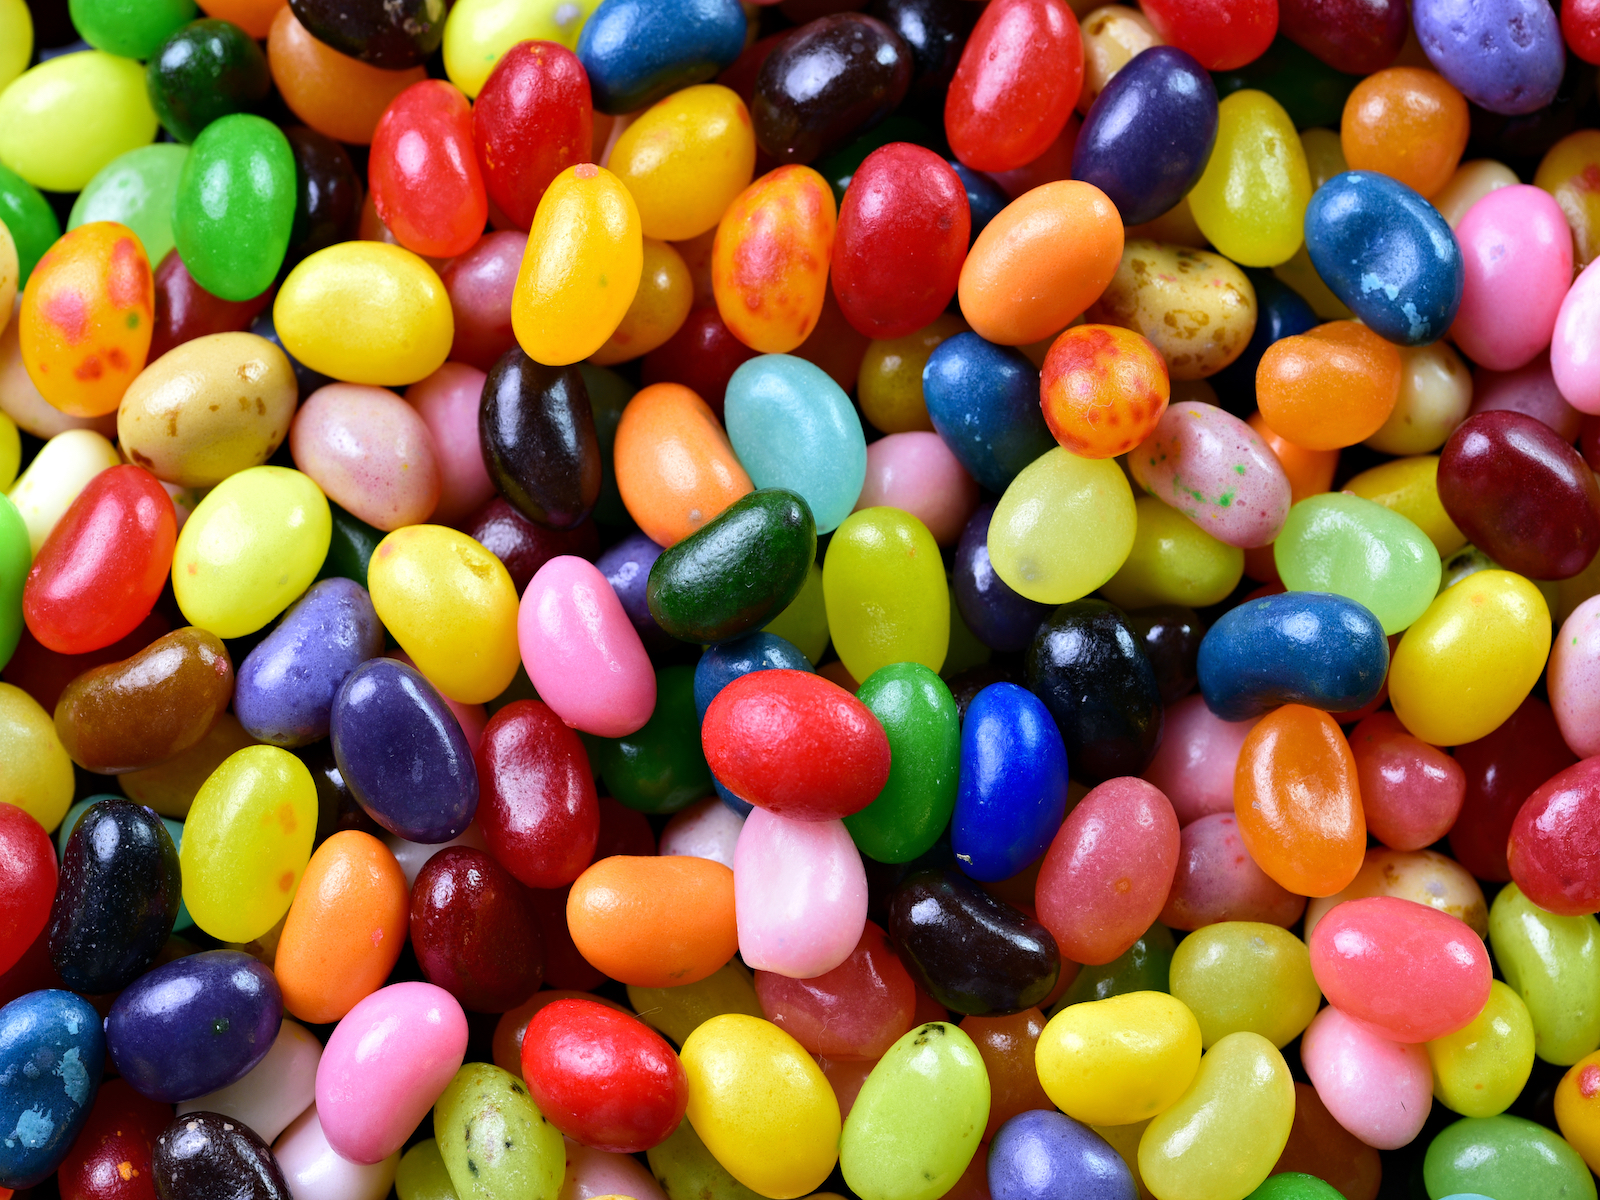 Jelly beans flavors by state